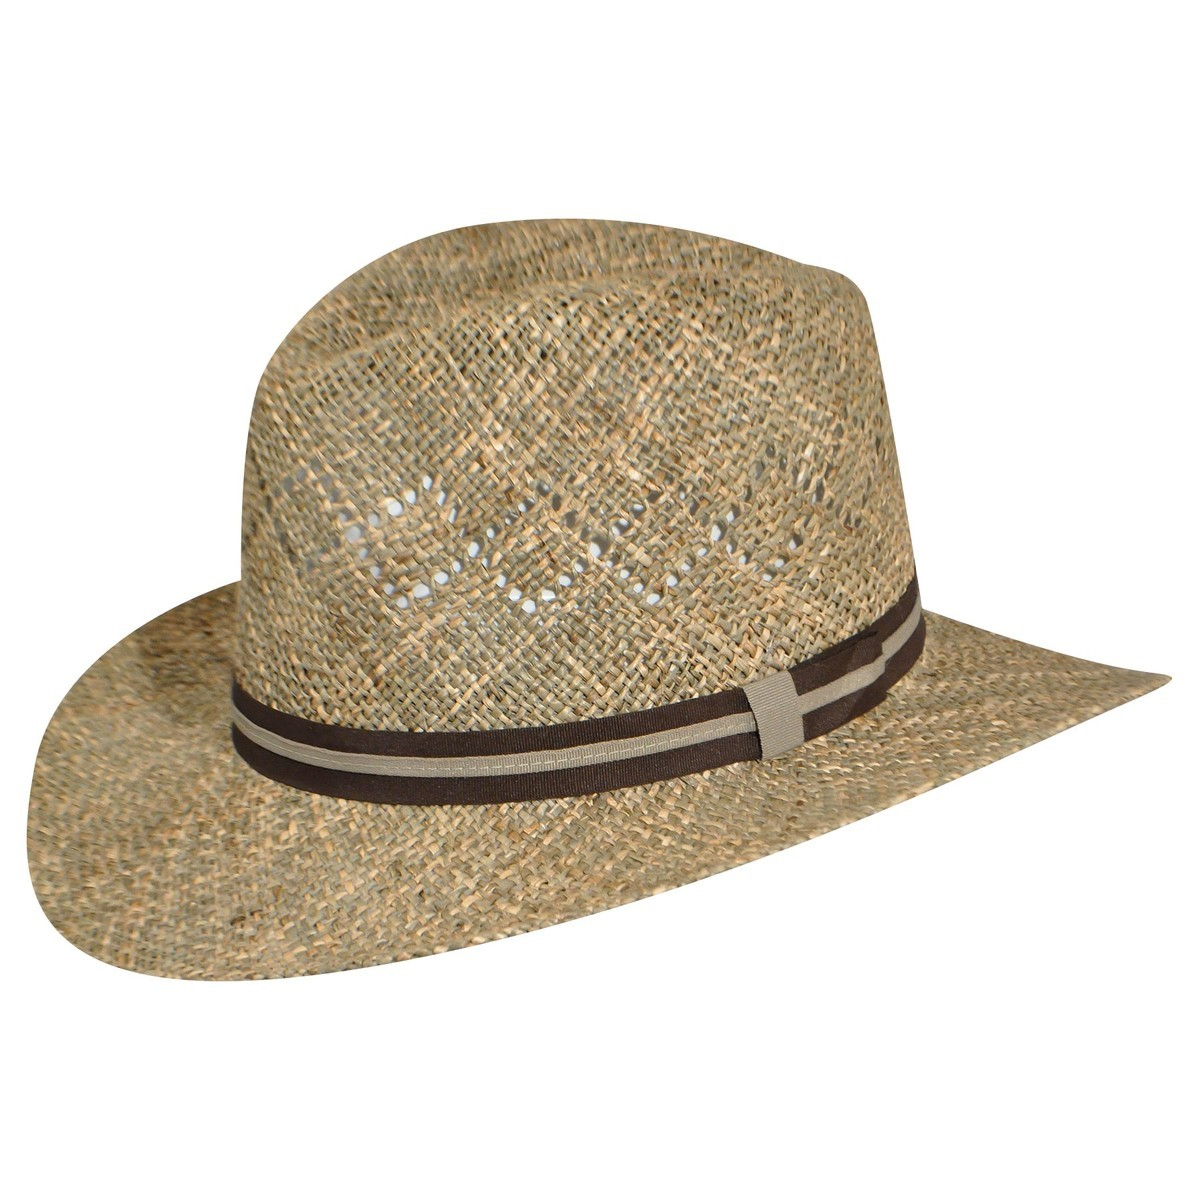 Country Gentleman Vented Linenweave Outback Hat Natural アウトバックハット 帽子 Natural